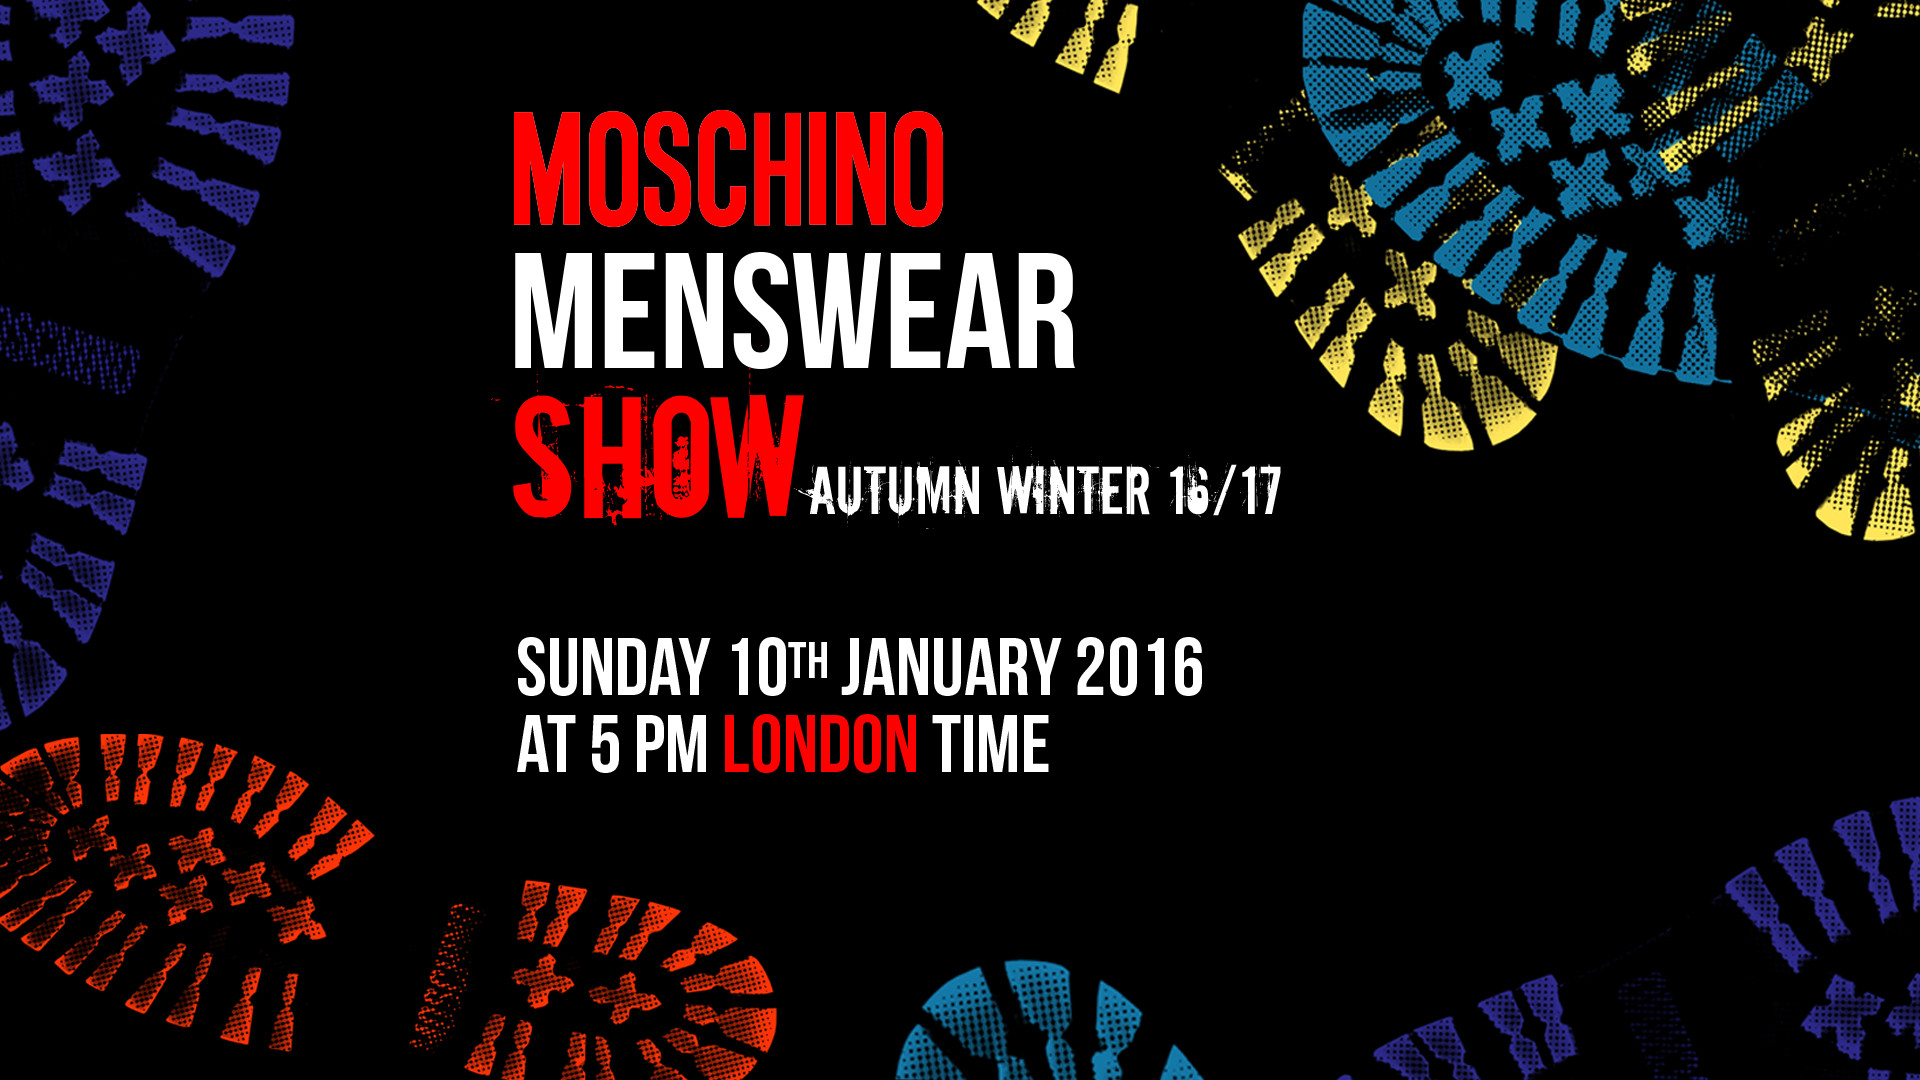 Moschino Autumn Winter 2016-17 Men's Fashion Show Live Streaming 10th January 5 Pm London